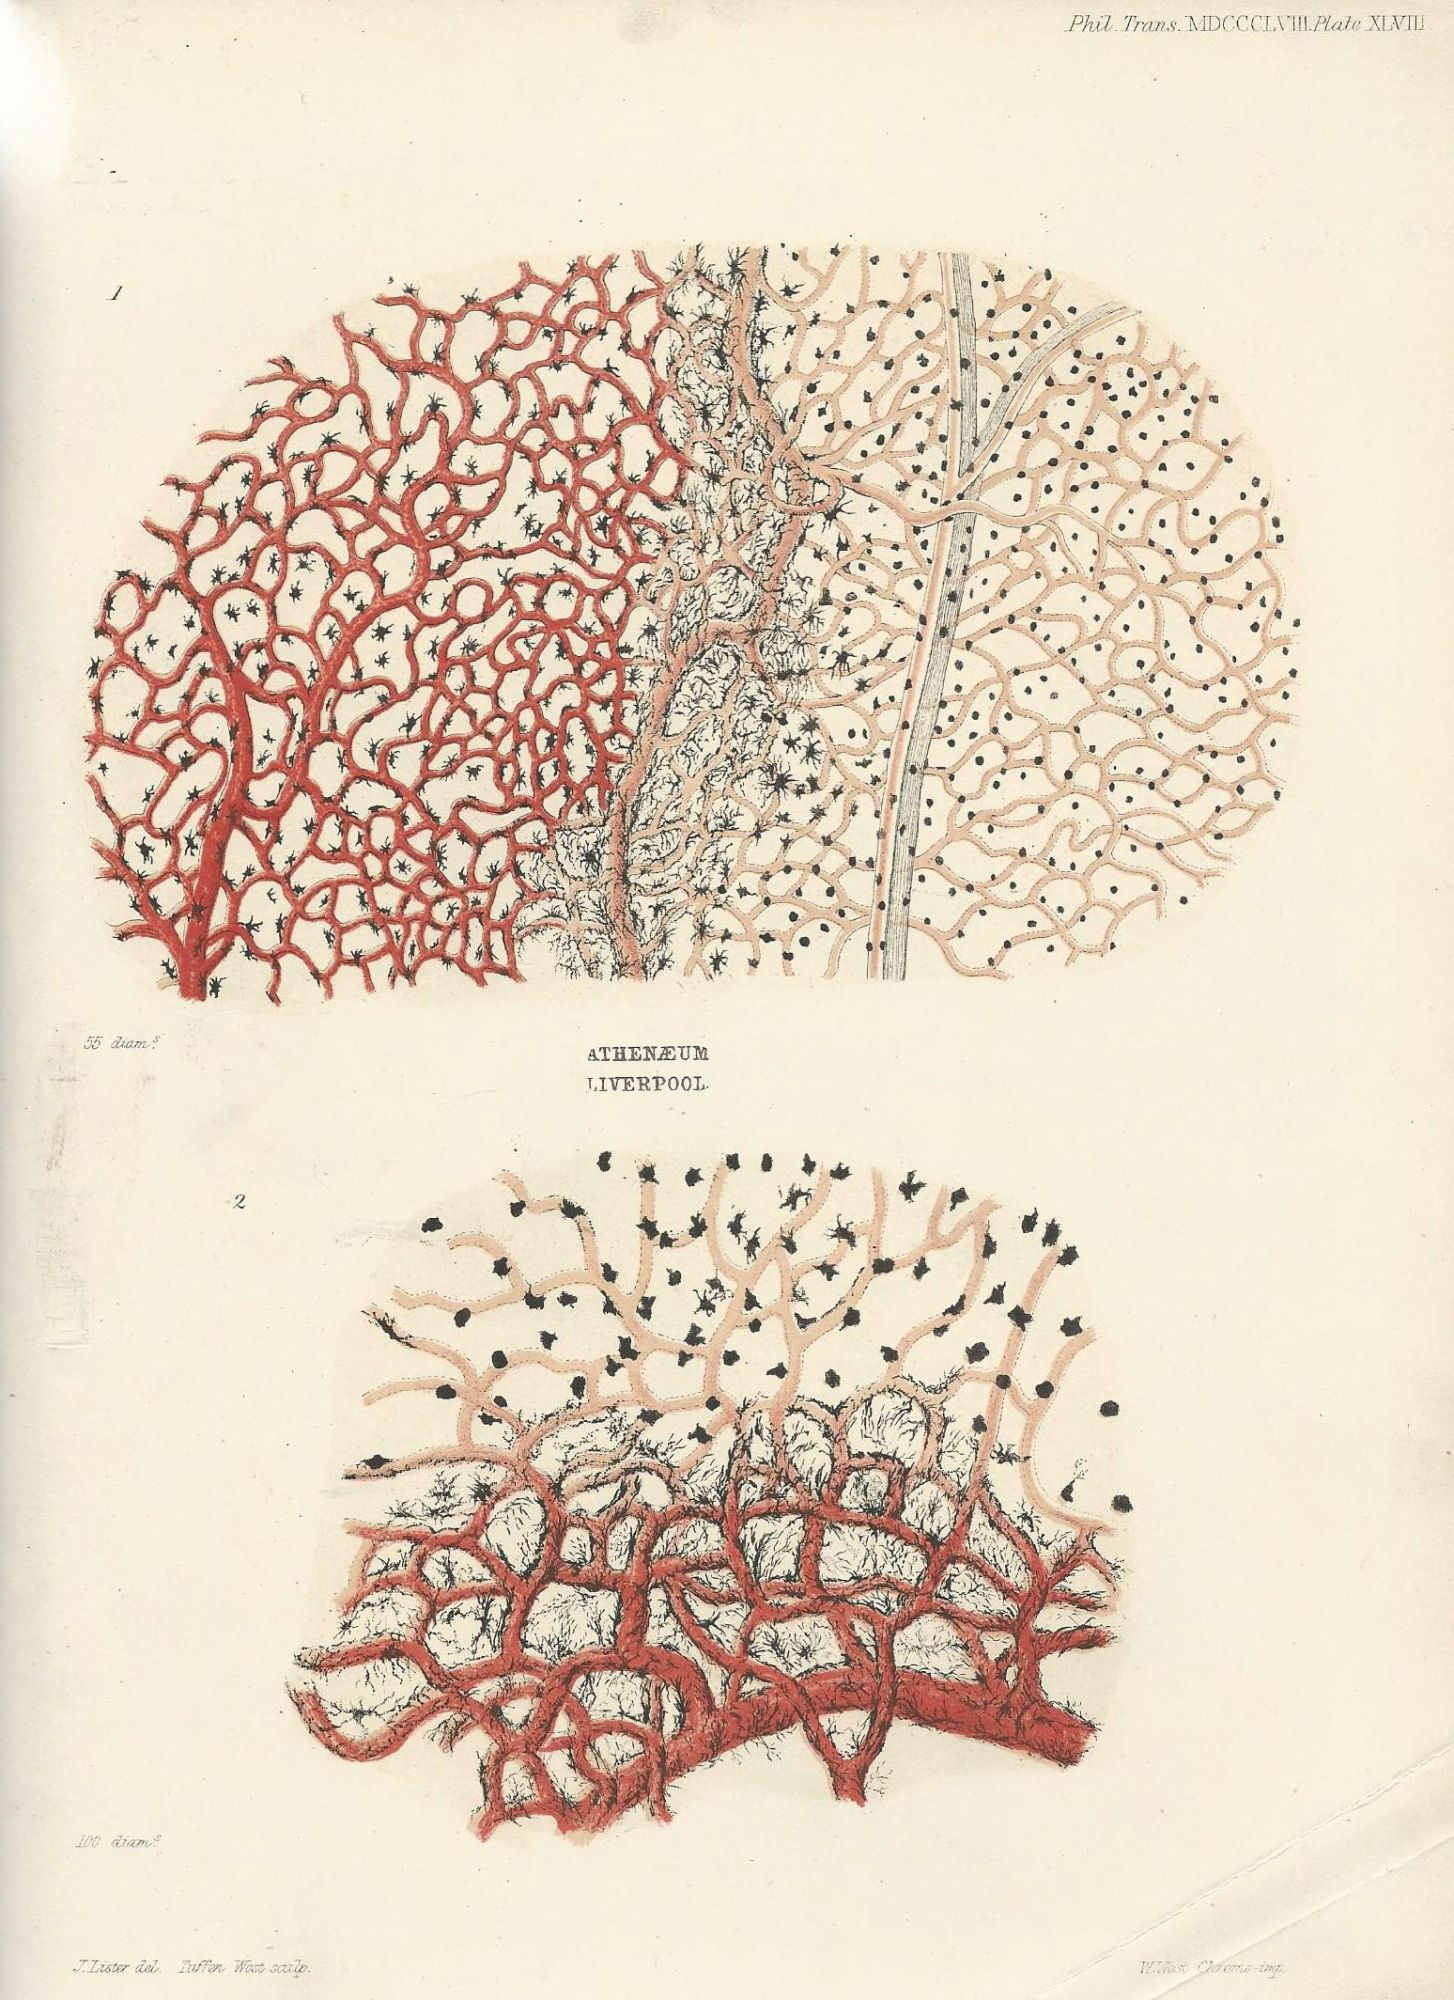 Inflammation An Inquiry Regarding The Parts Of The Nervous System